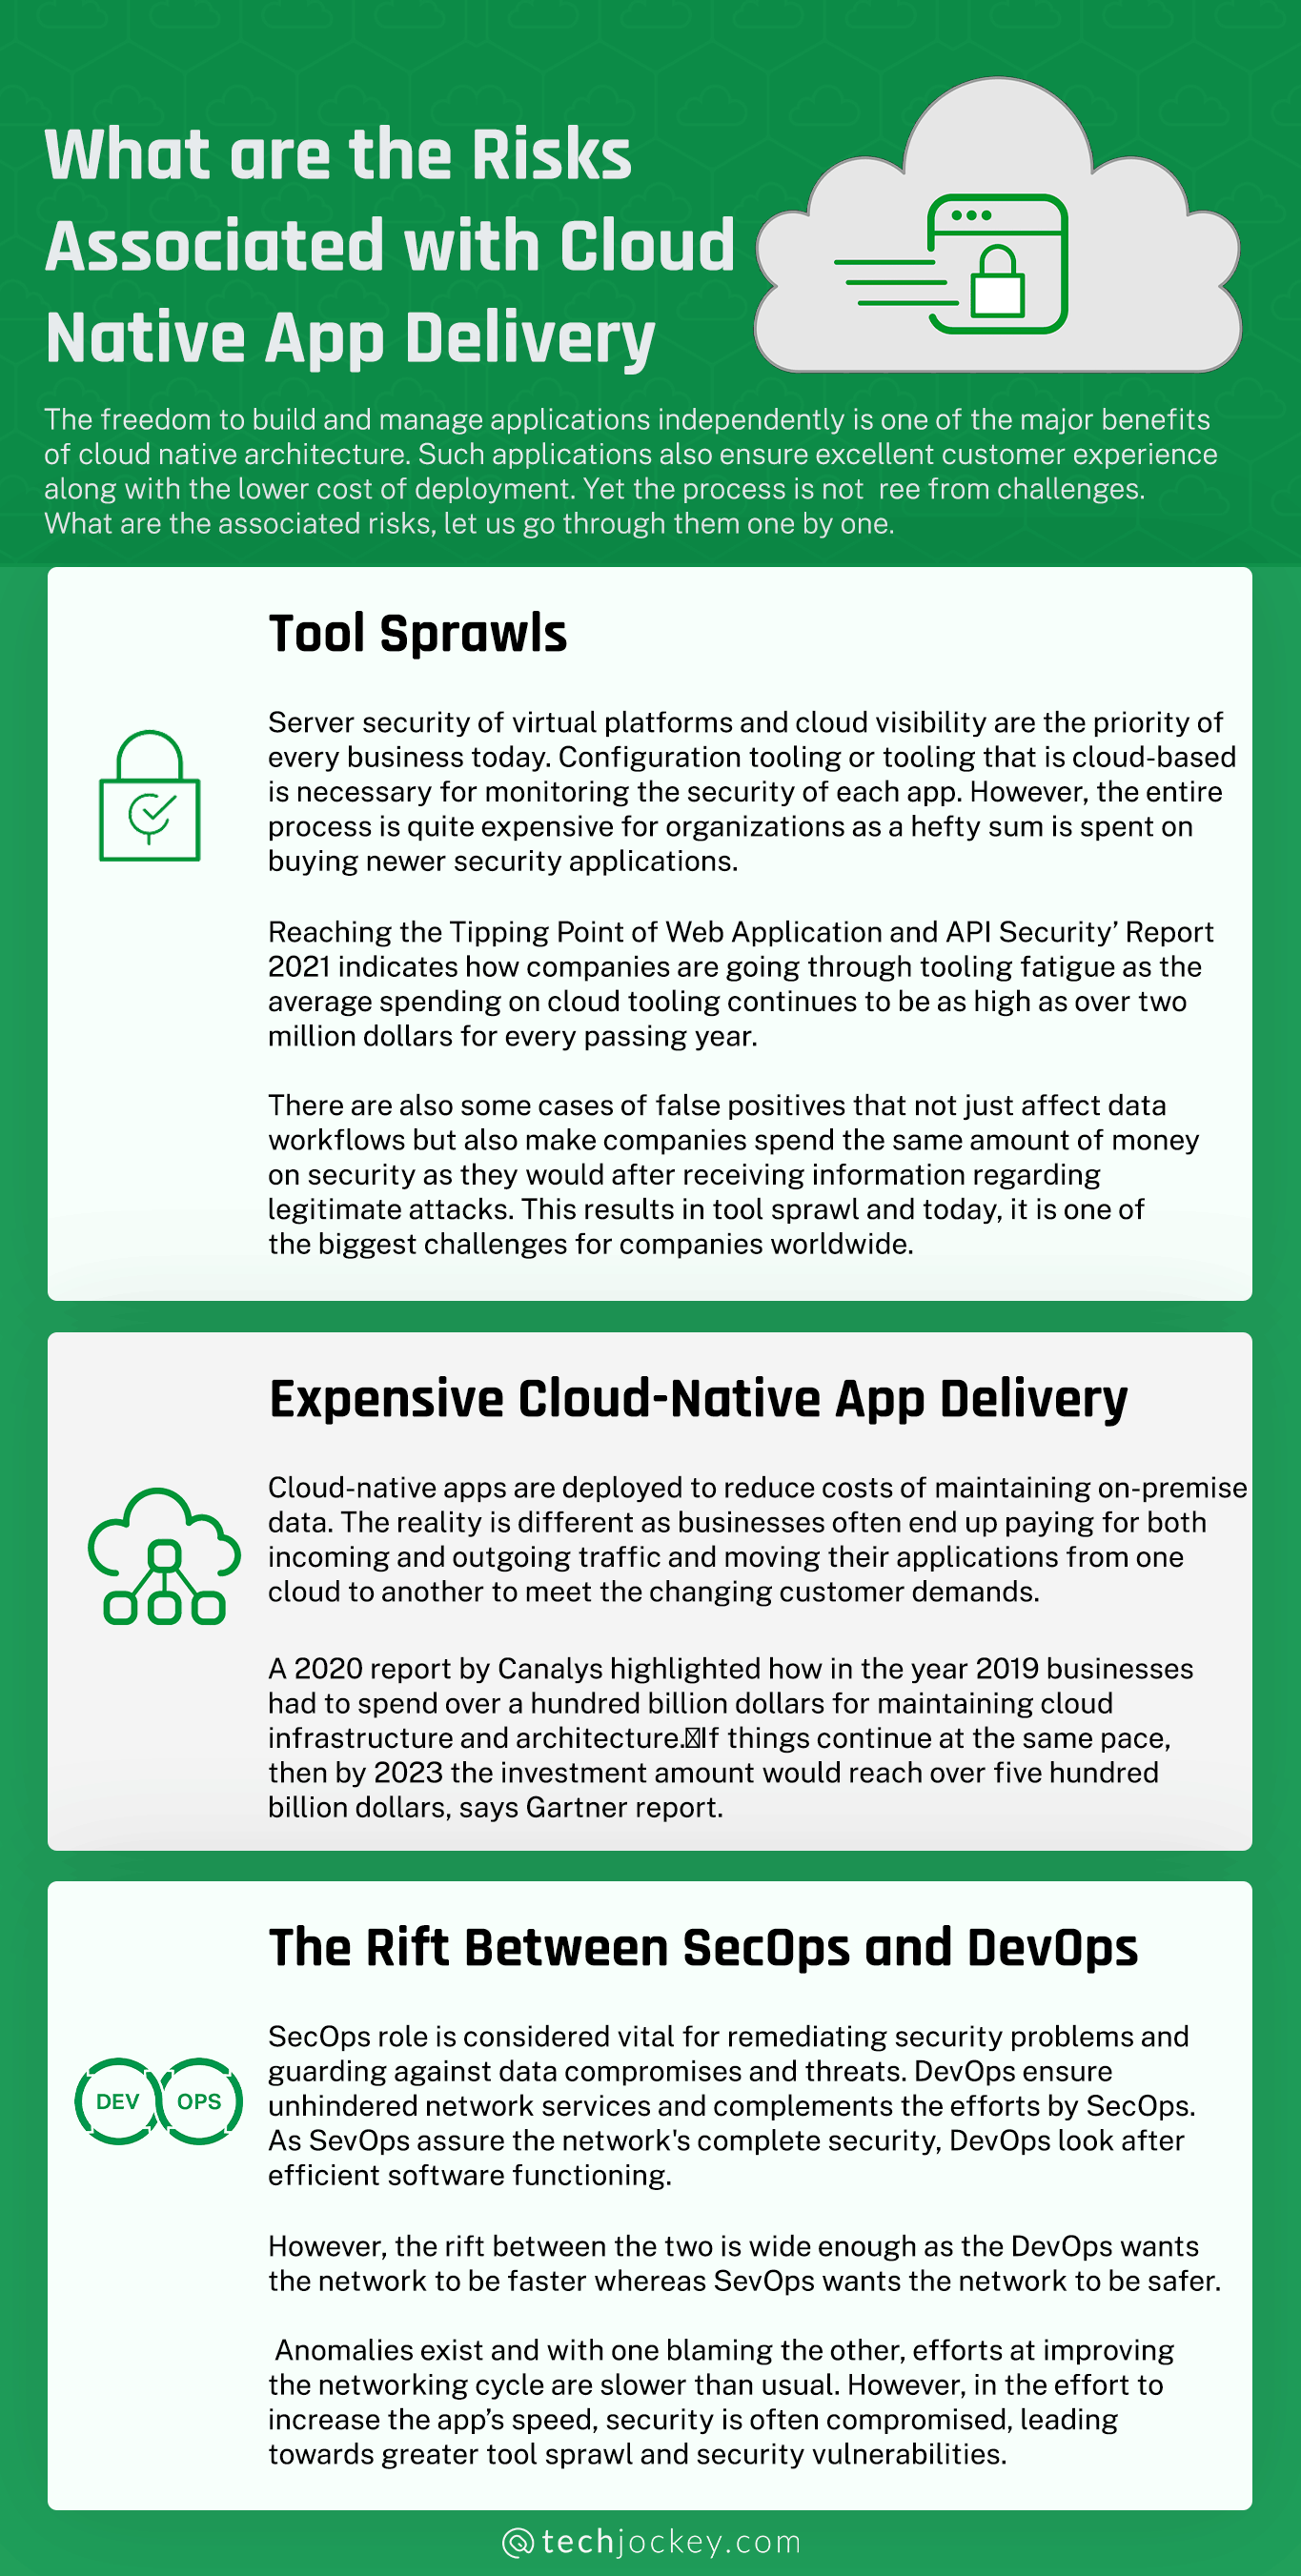 What are the Risks Associated with Cloud Native App Delivery